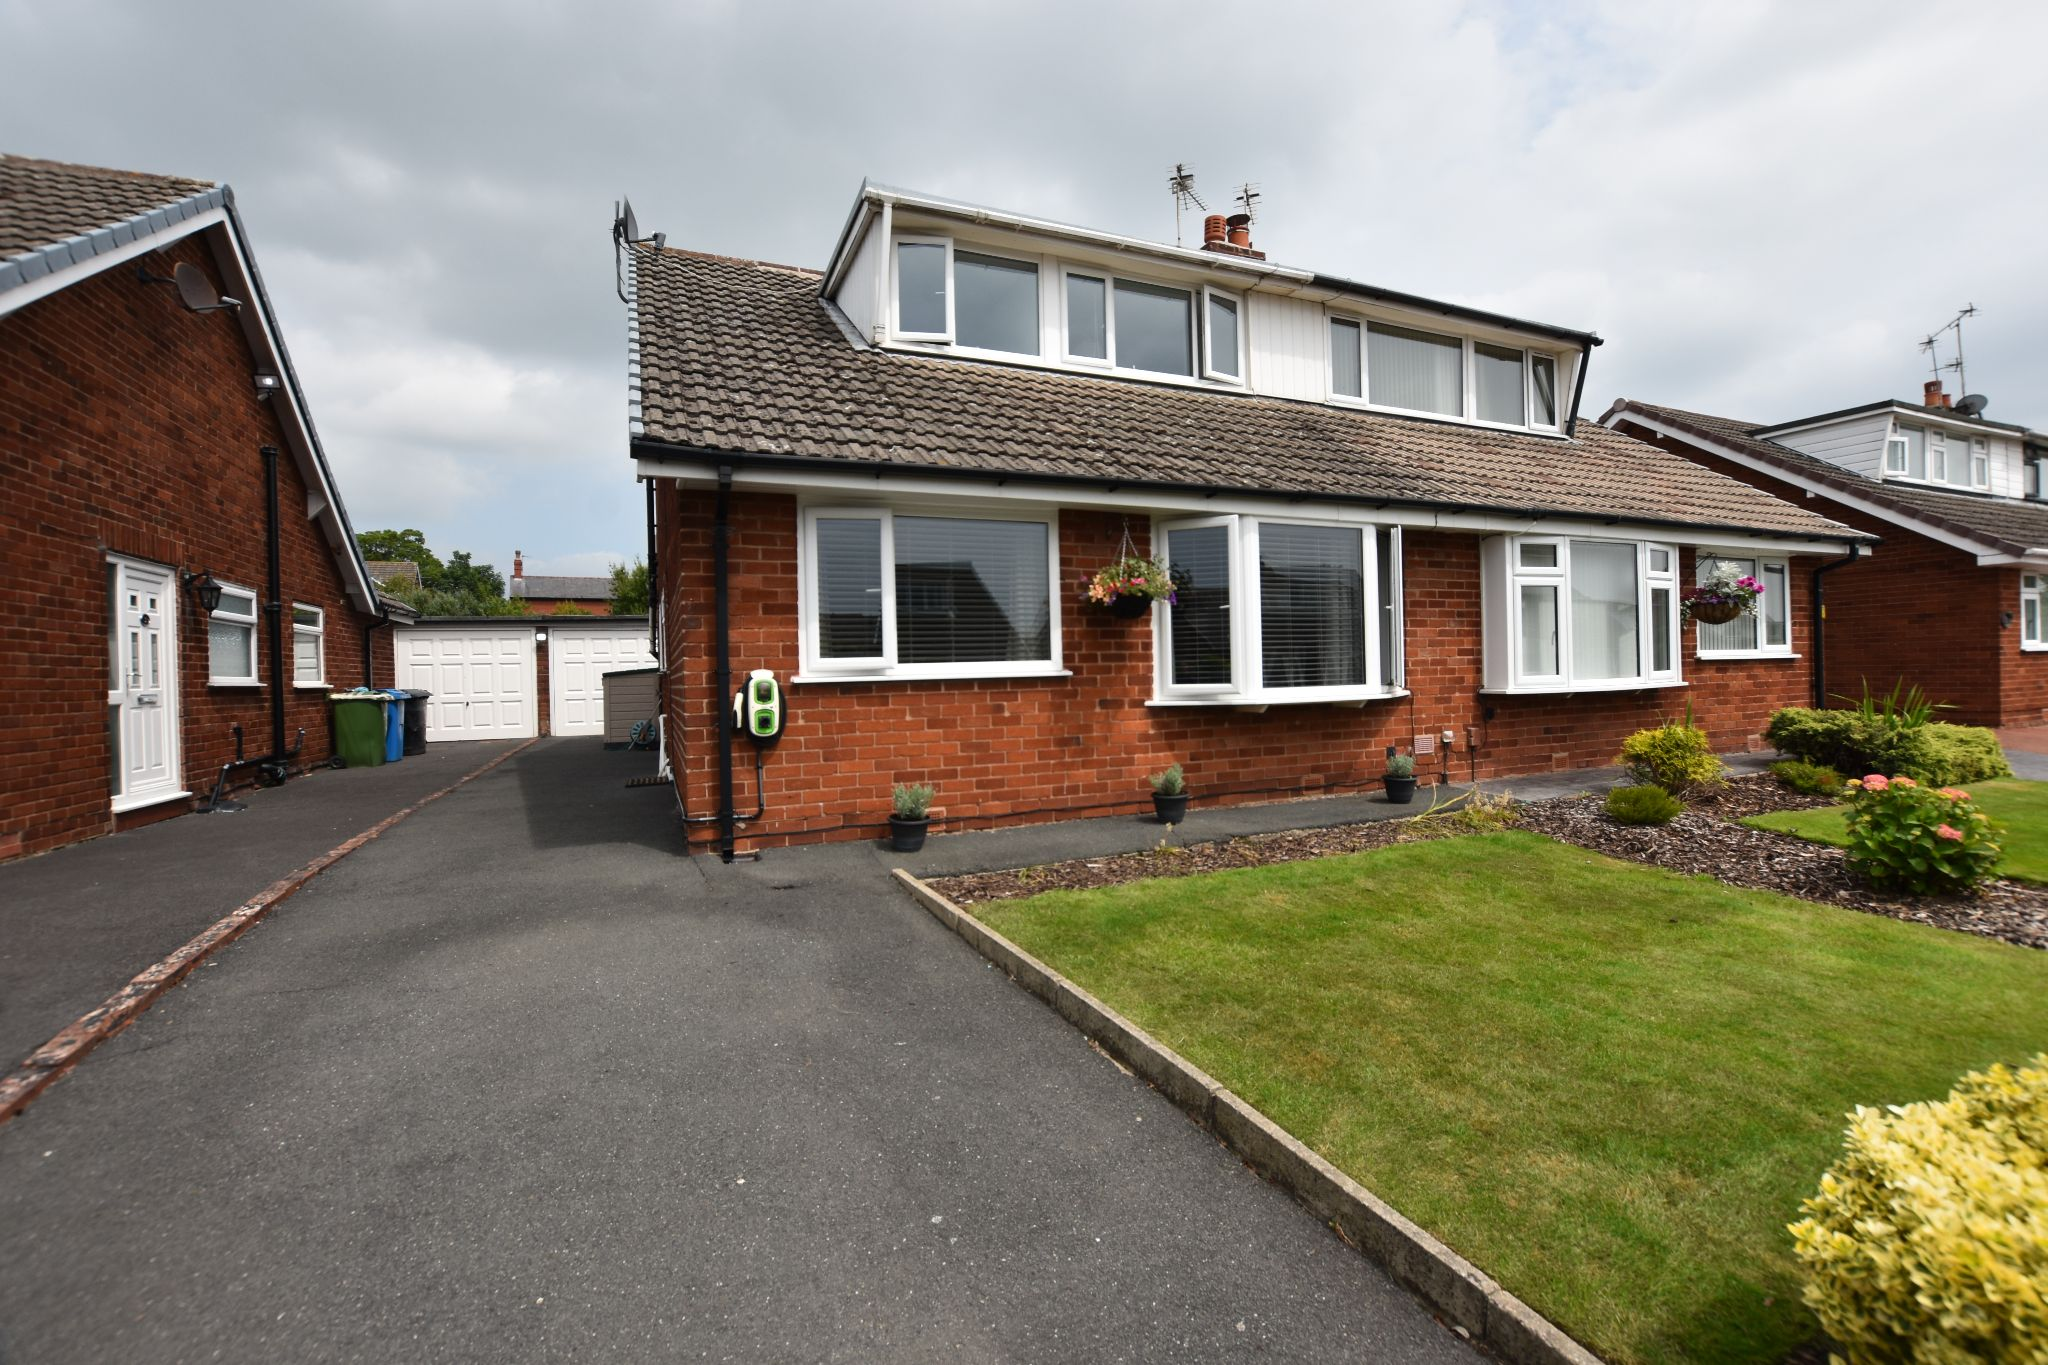 4 bedroom semi-detached bungalow Sold STC in Preston - Chatsworth Ave